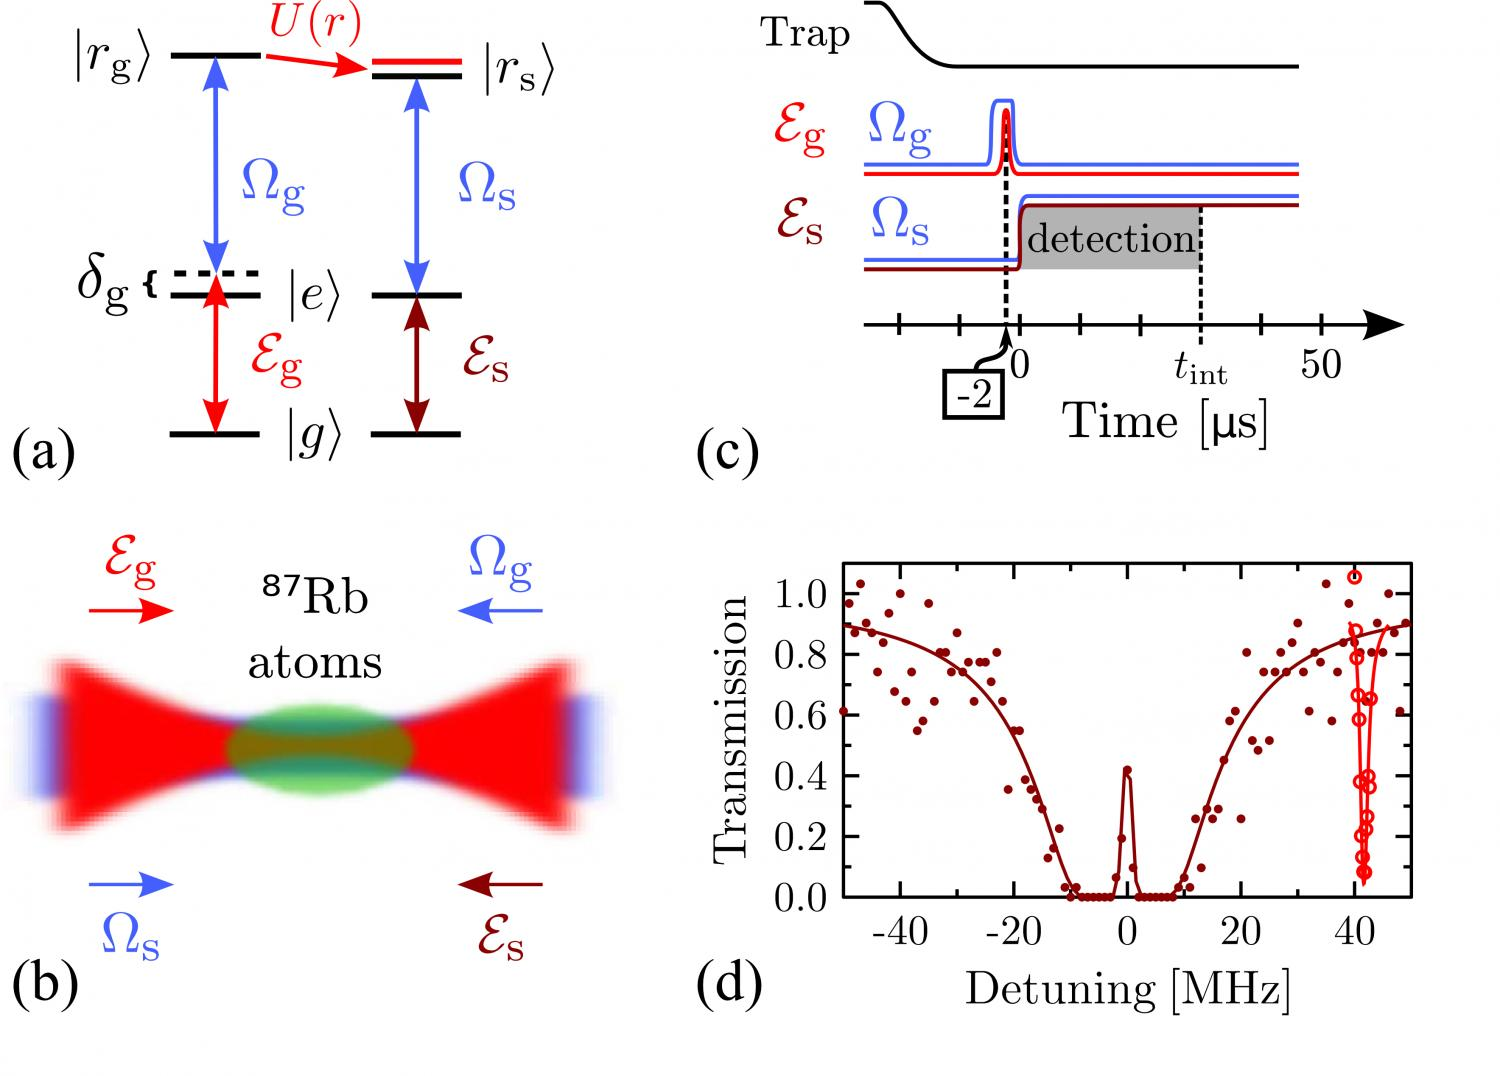 Step Lightly All Optical Transistor Triggered By Single Photon Parallel Circuit Simplest Physics Ever Promises Advances In Quantum Applications